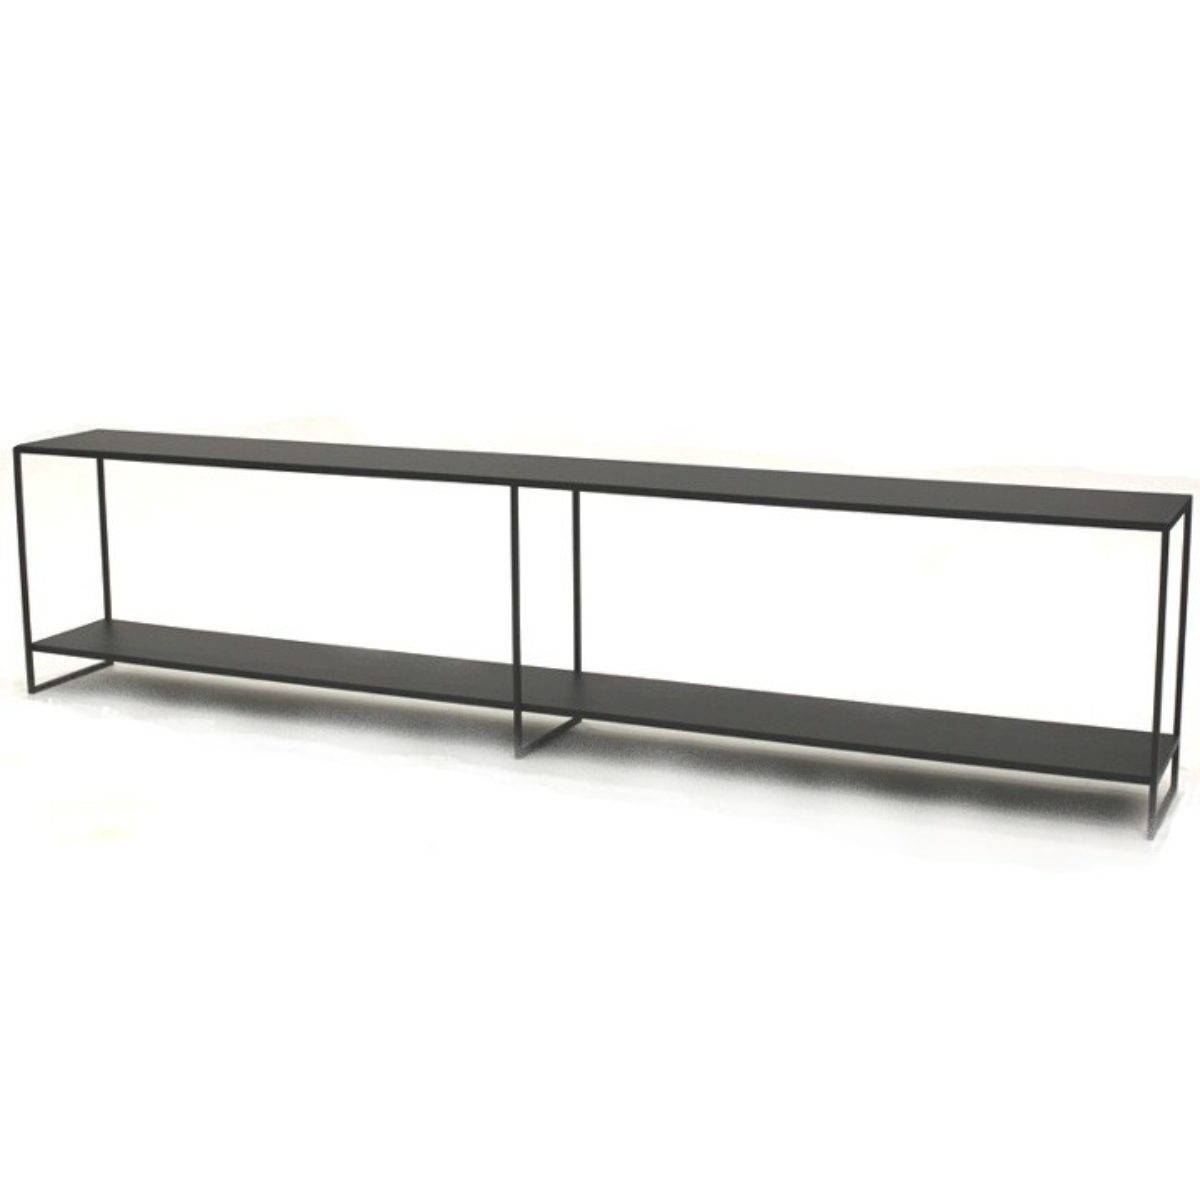 Metaform BS D wandtafel